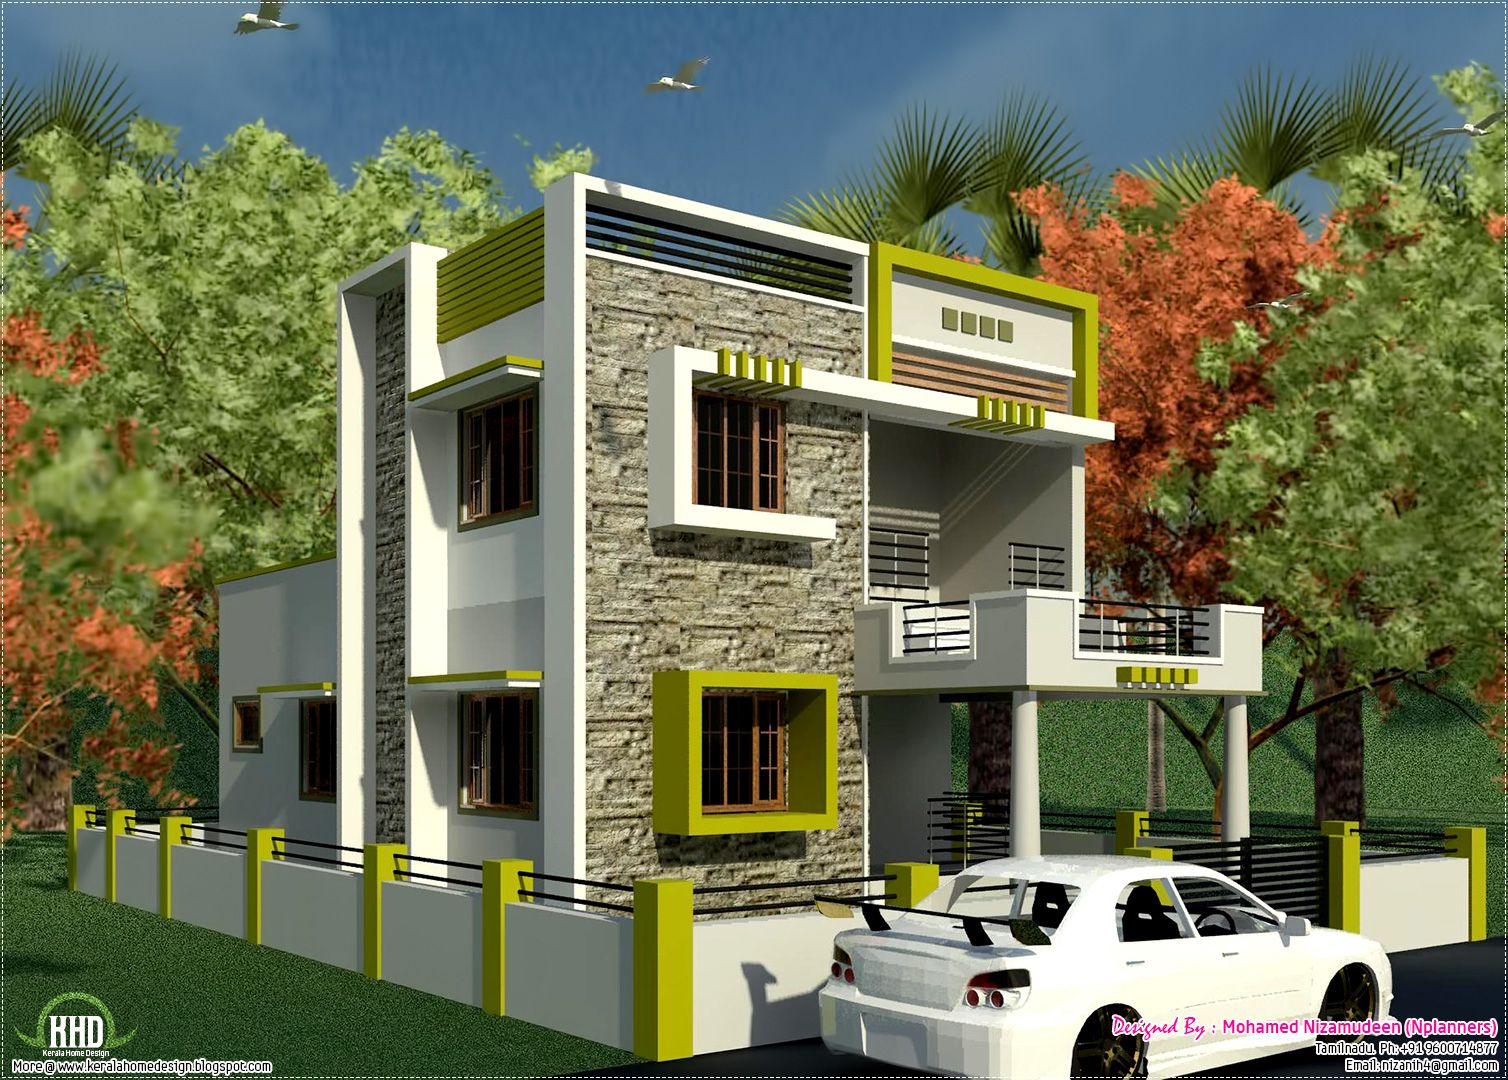 Small house with car park design tobfav com ideas for for Indian home design photos exterior